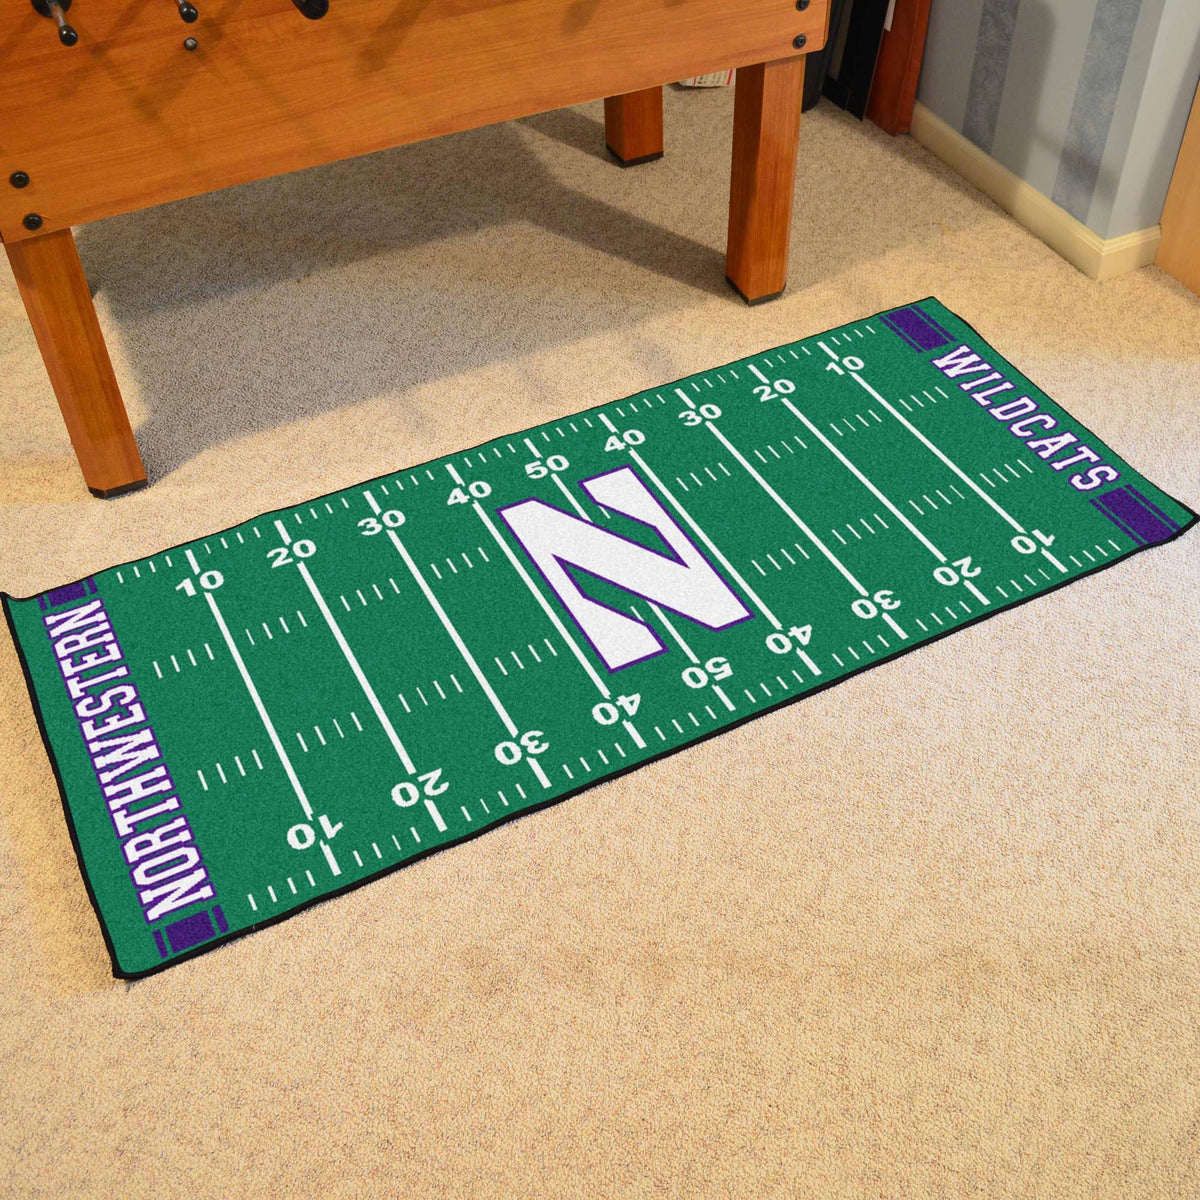 Collegiate - Football Field Runner Collegiate Mats, Rectangular Mats, Football Field Runner, Collegiate, Home Fan Mats Northwestern